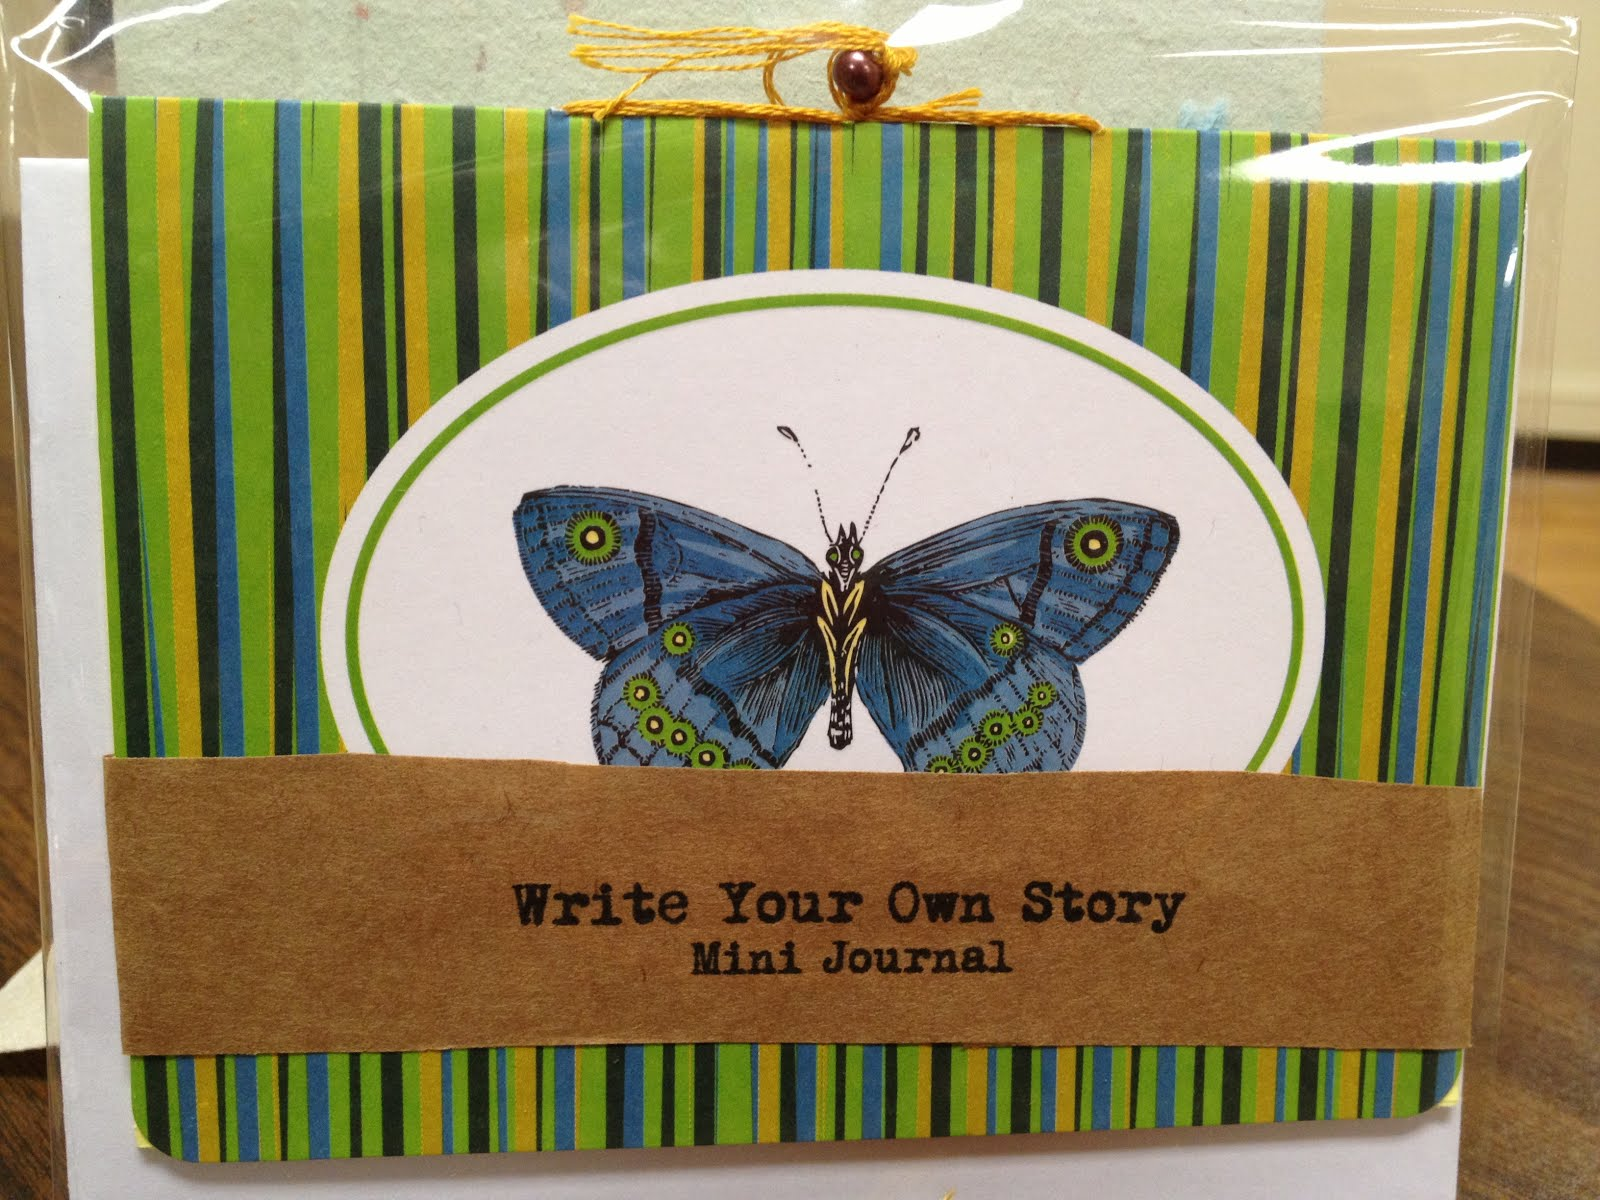 Write Your Own Story Mini Journal